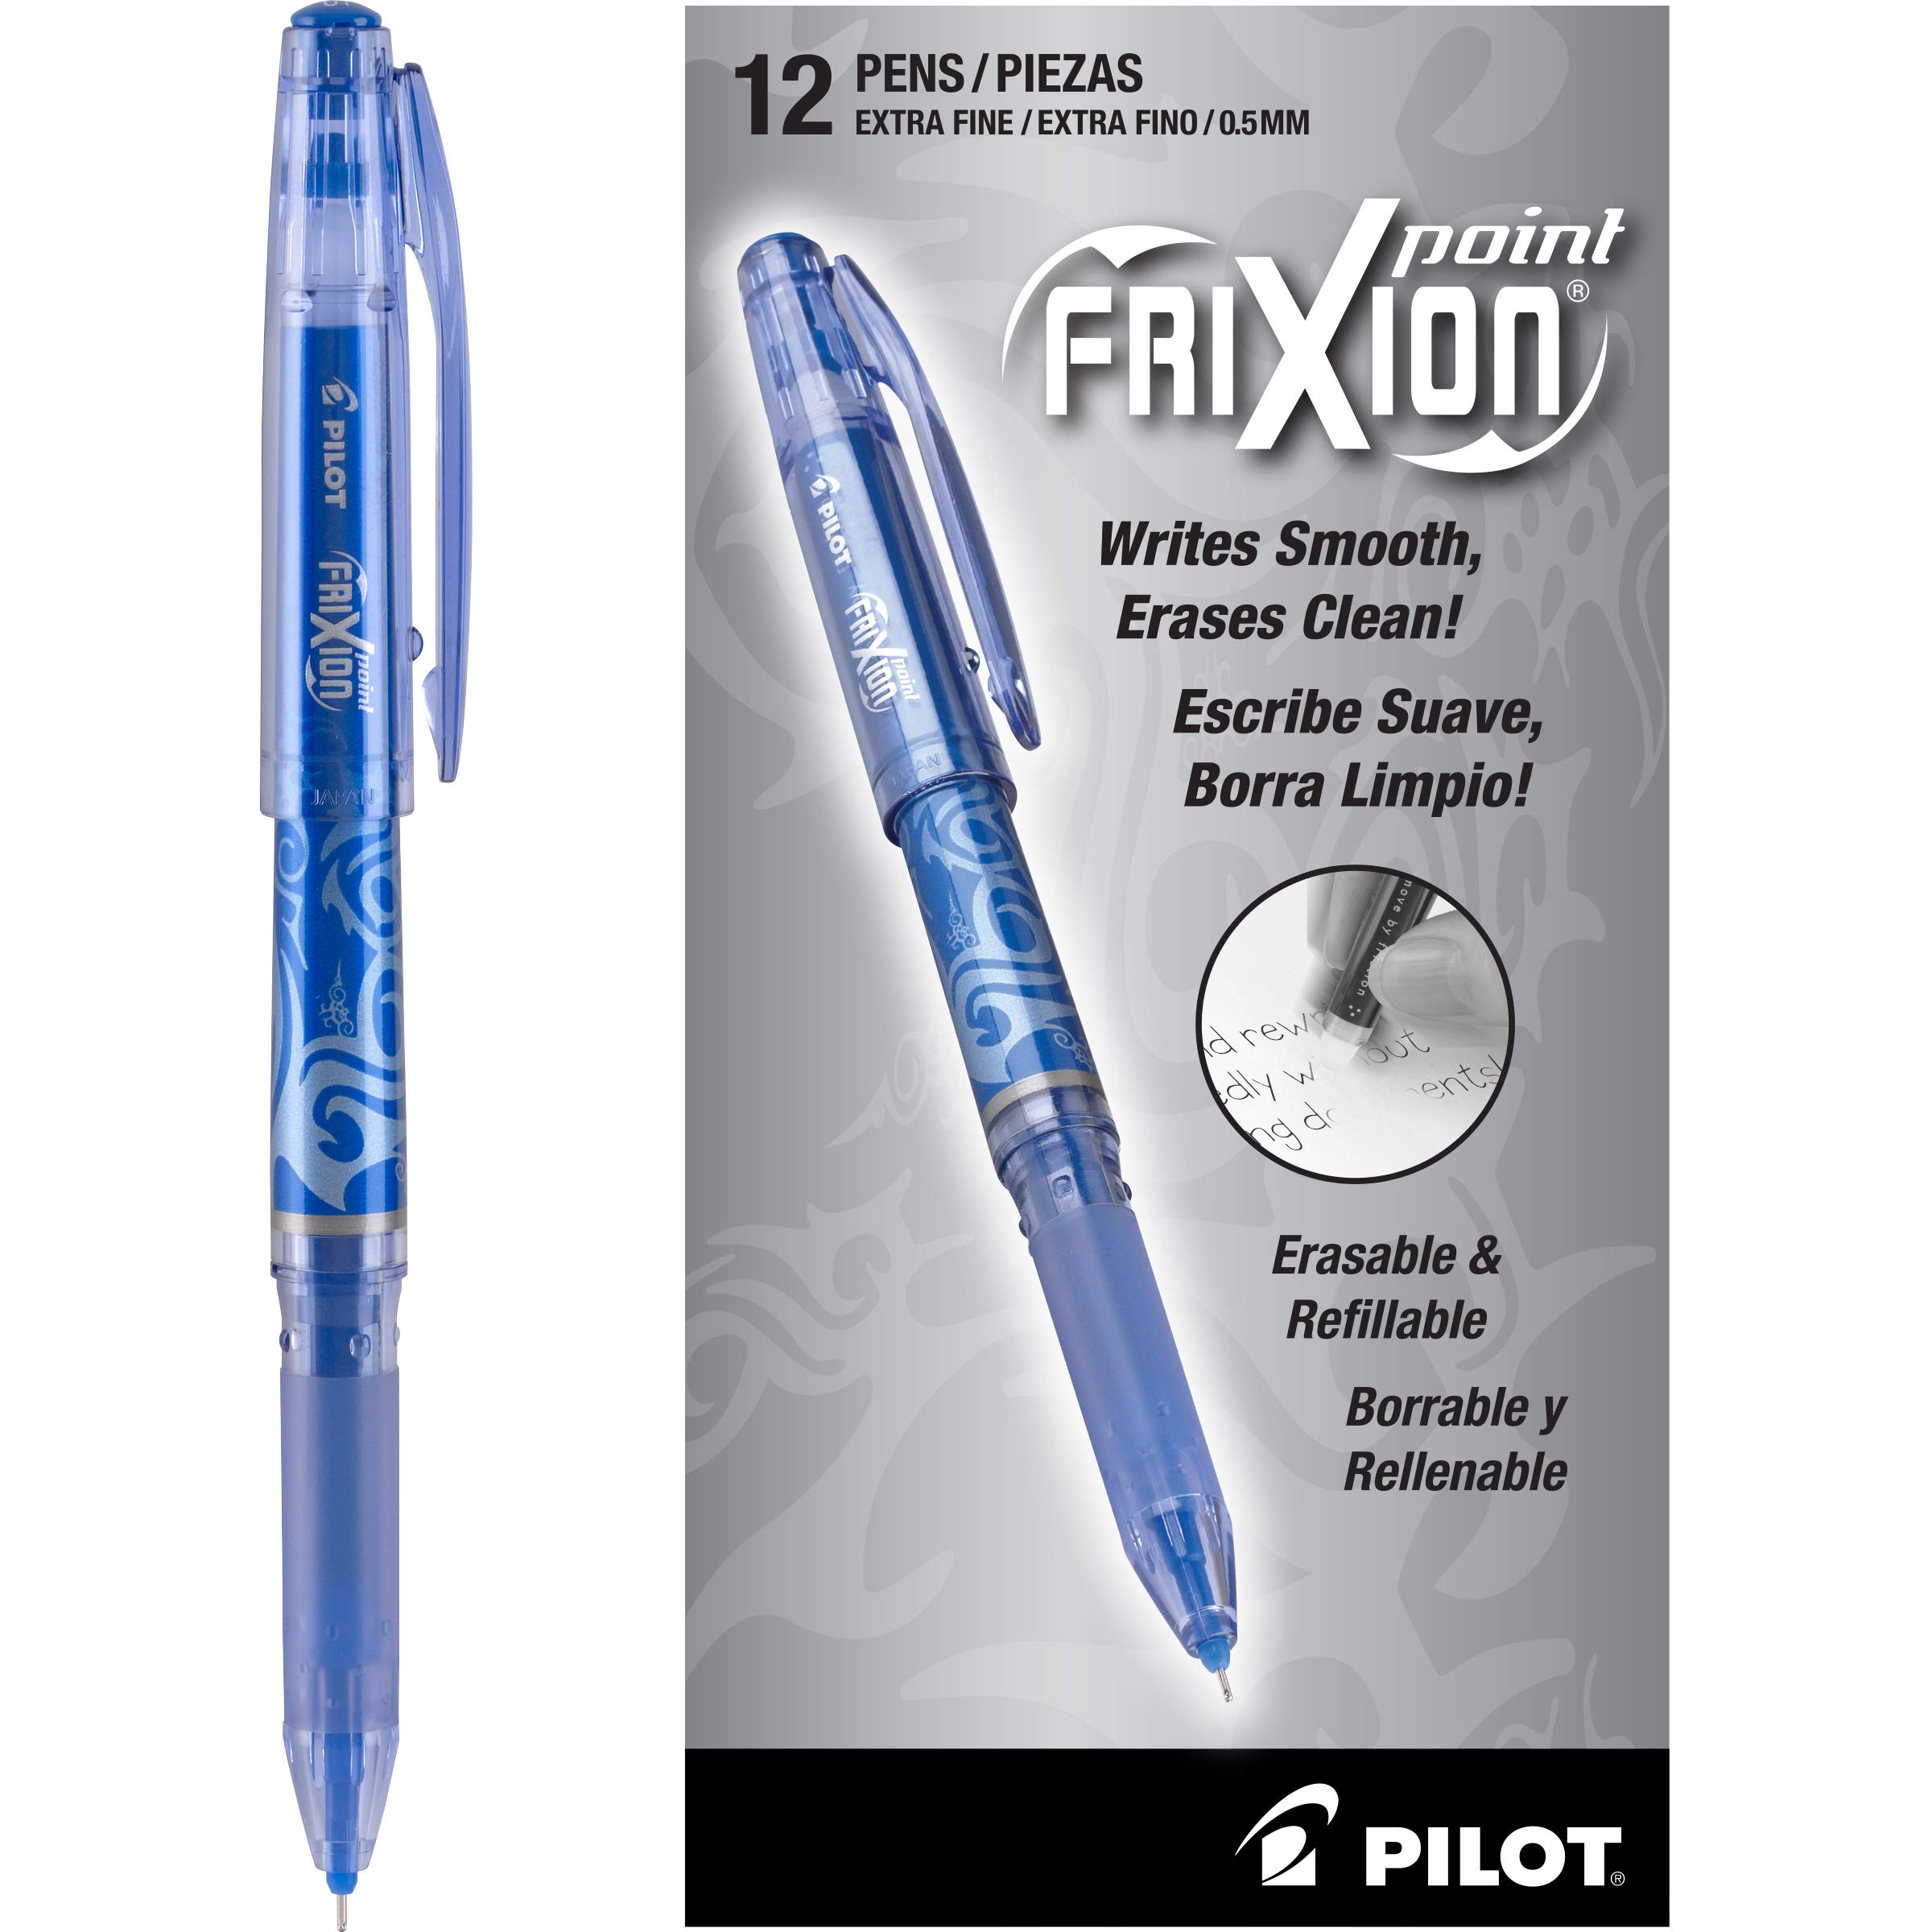 PILOT FriXion Point Erasable & Refillable Gel Ink Pens, Extra Fine Point, Blue Ink, 12 Count (31574)